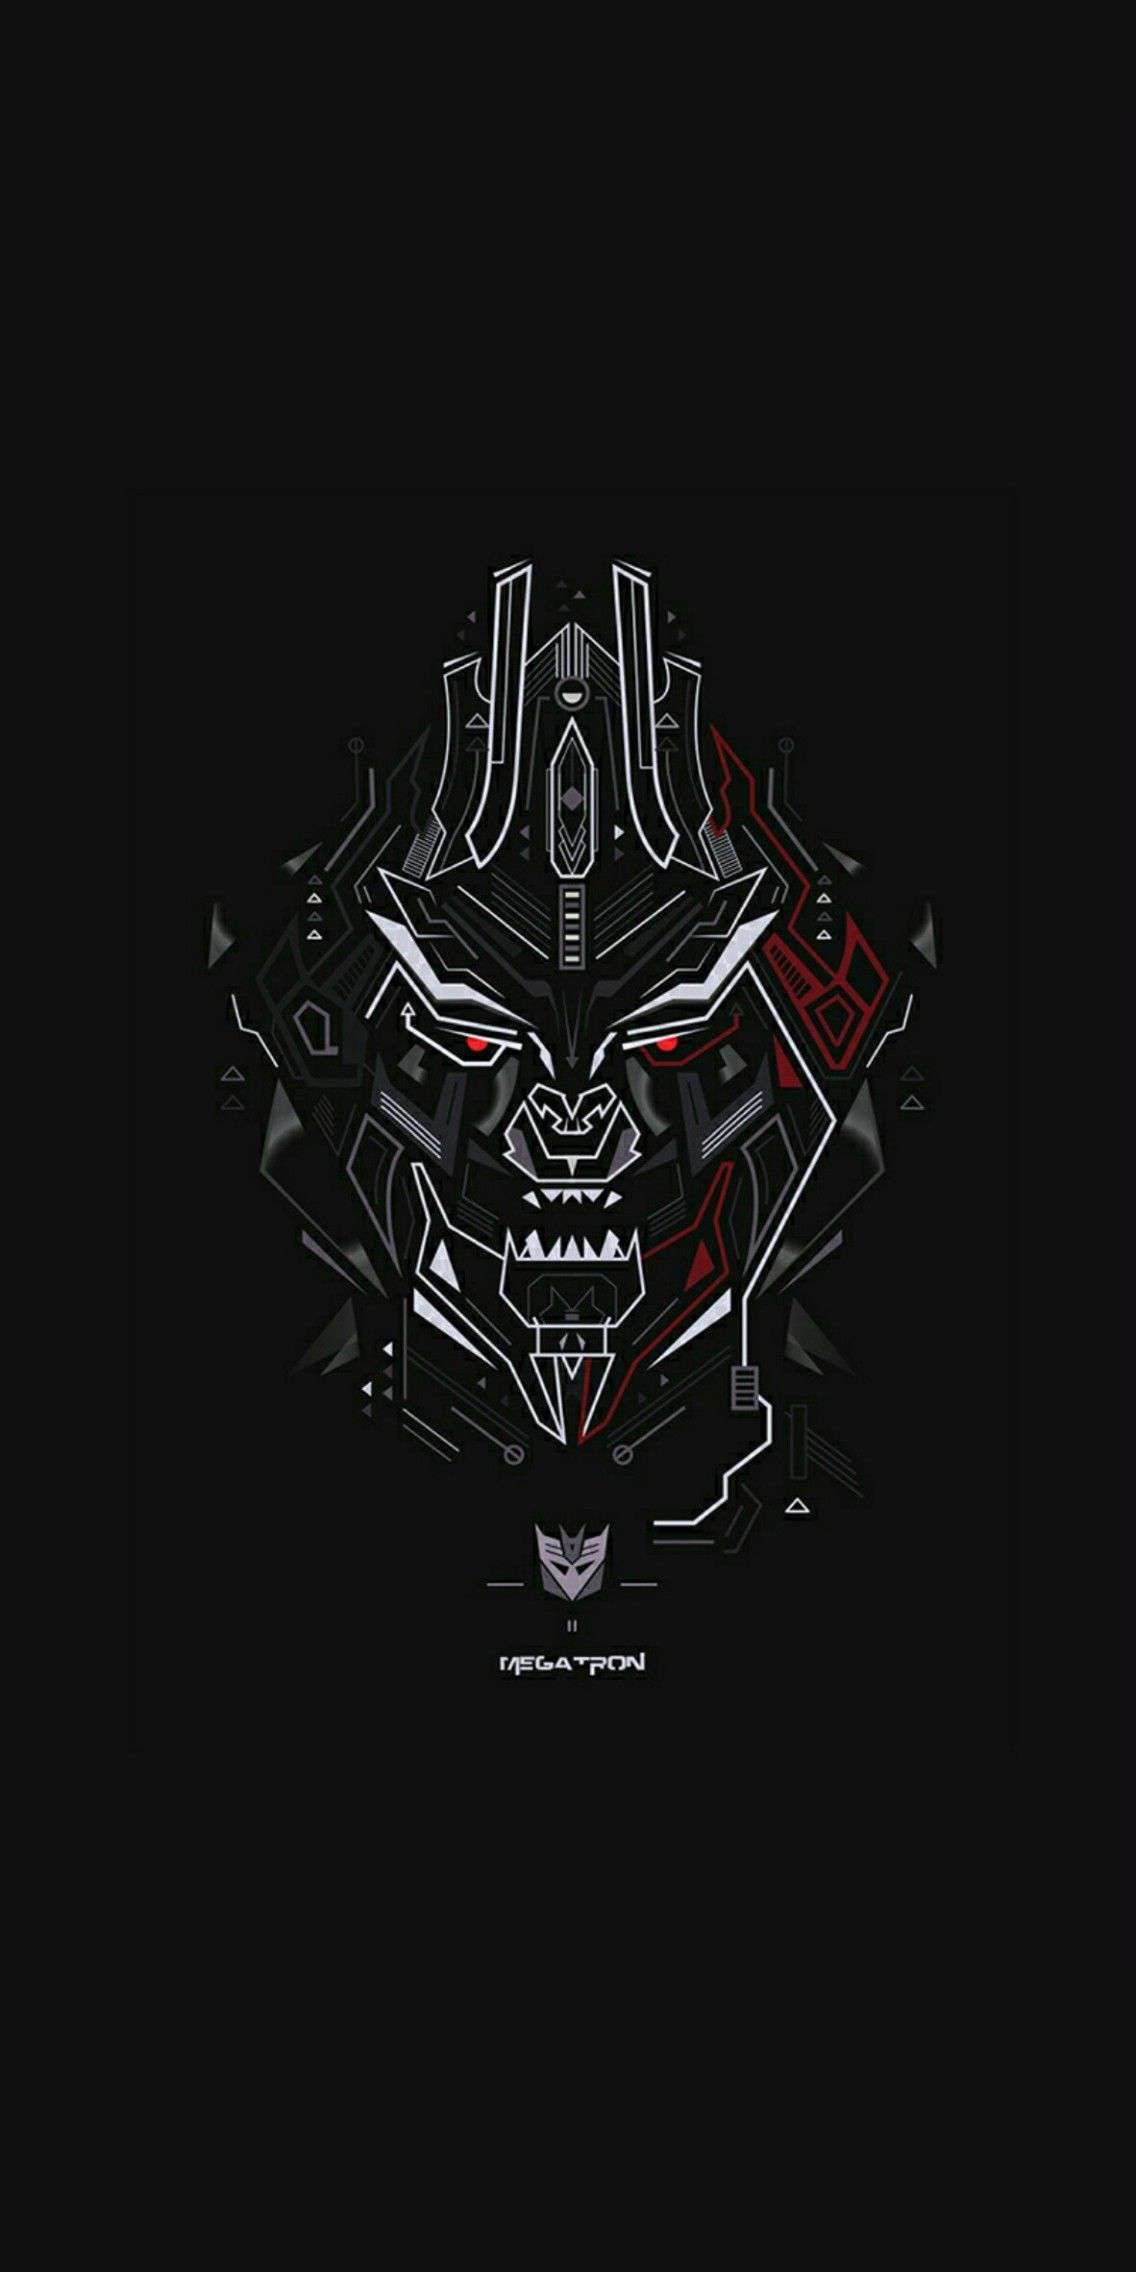 Megatron Iphone Wallpaper Oneplus Wallpapers Graffiti Wallpaper Iphone Wallpaper